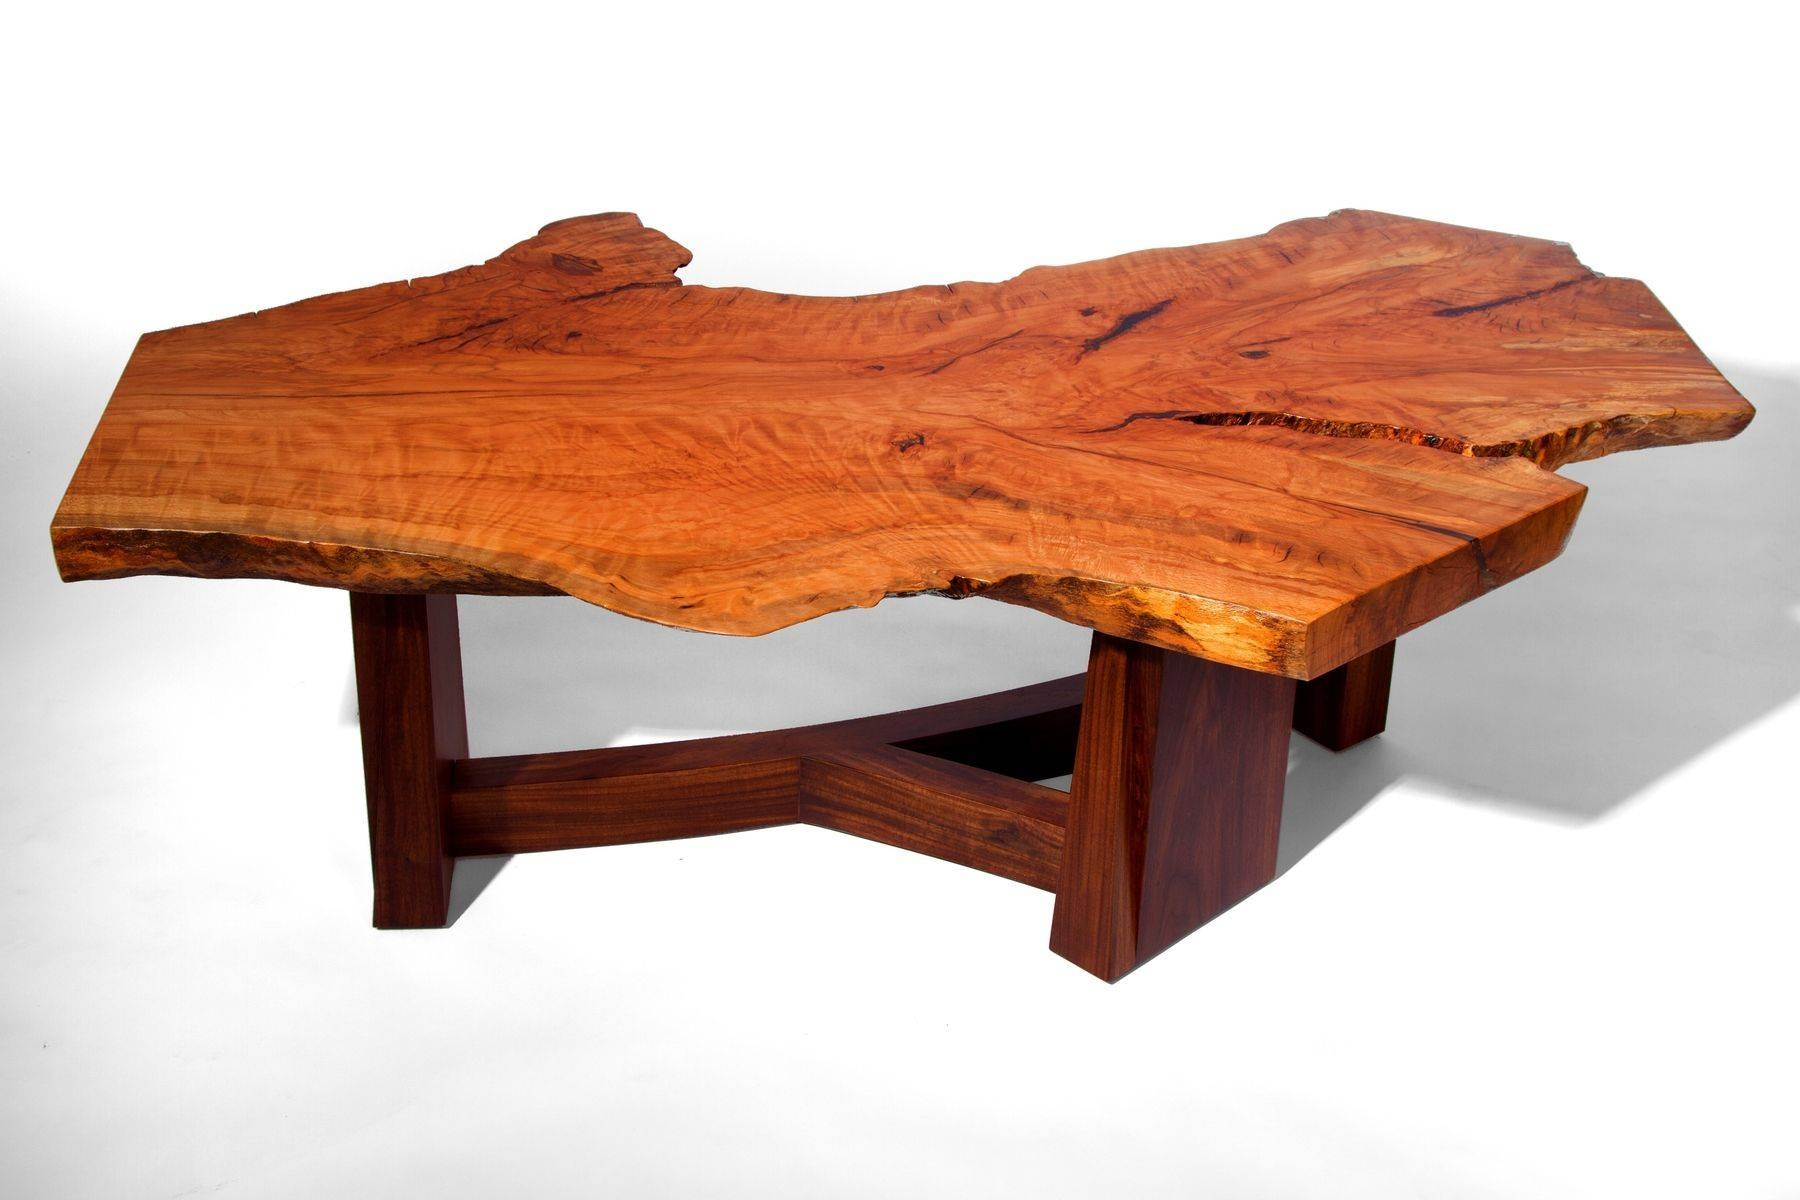 Live Edge Wood Furniture | Custommade throughout Tokyo Coffee Tables (Image 10 of 30)